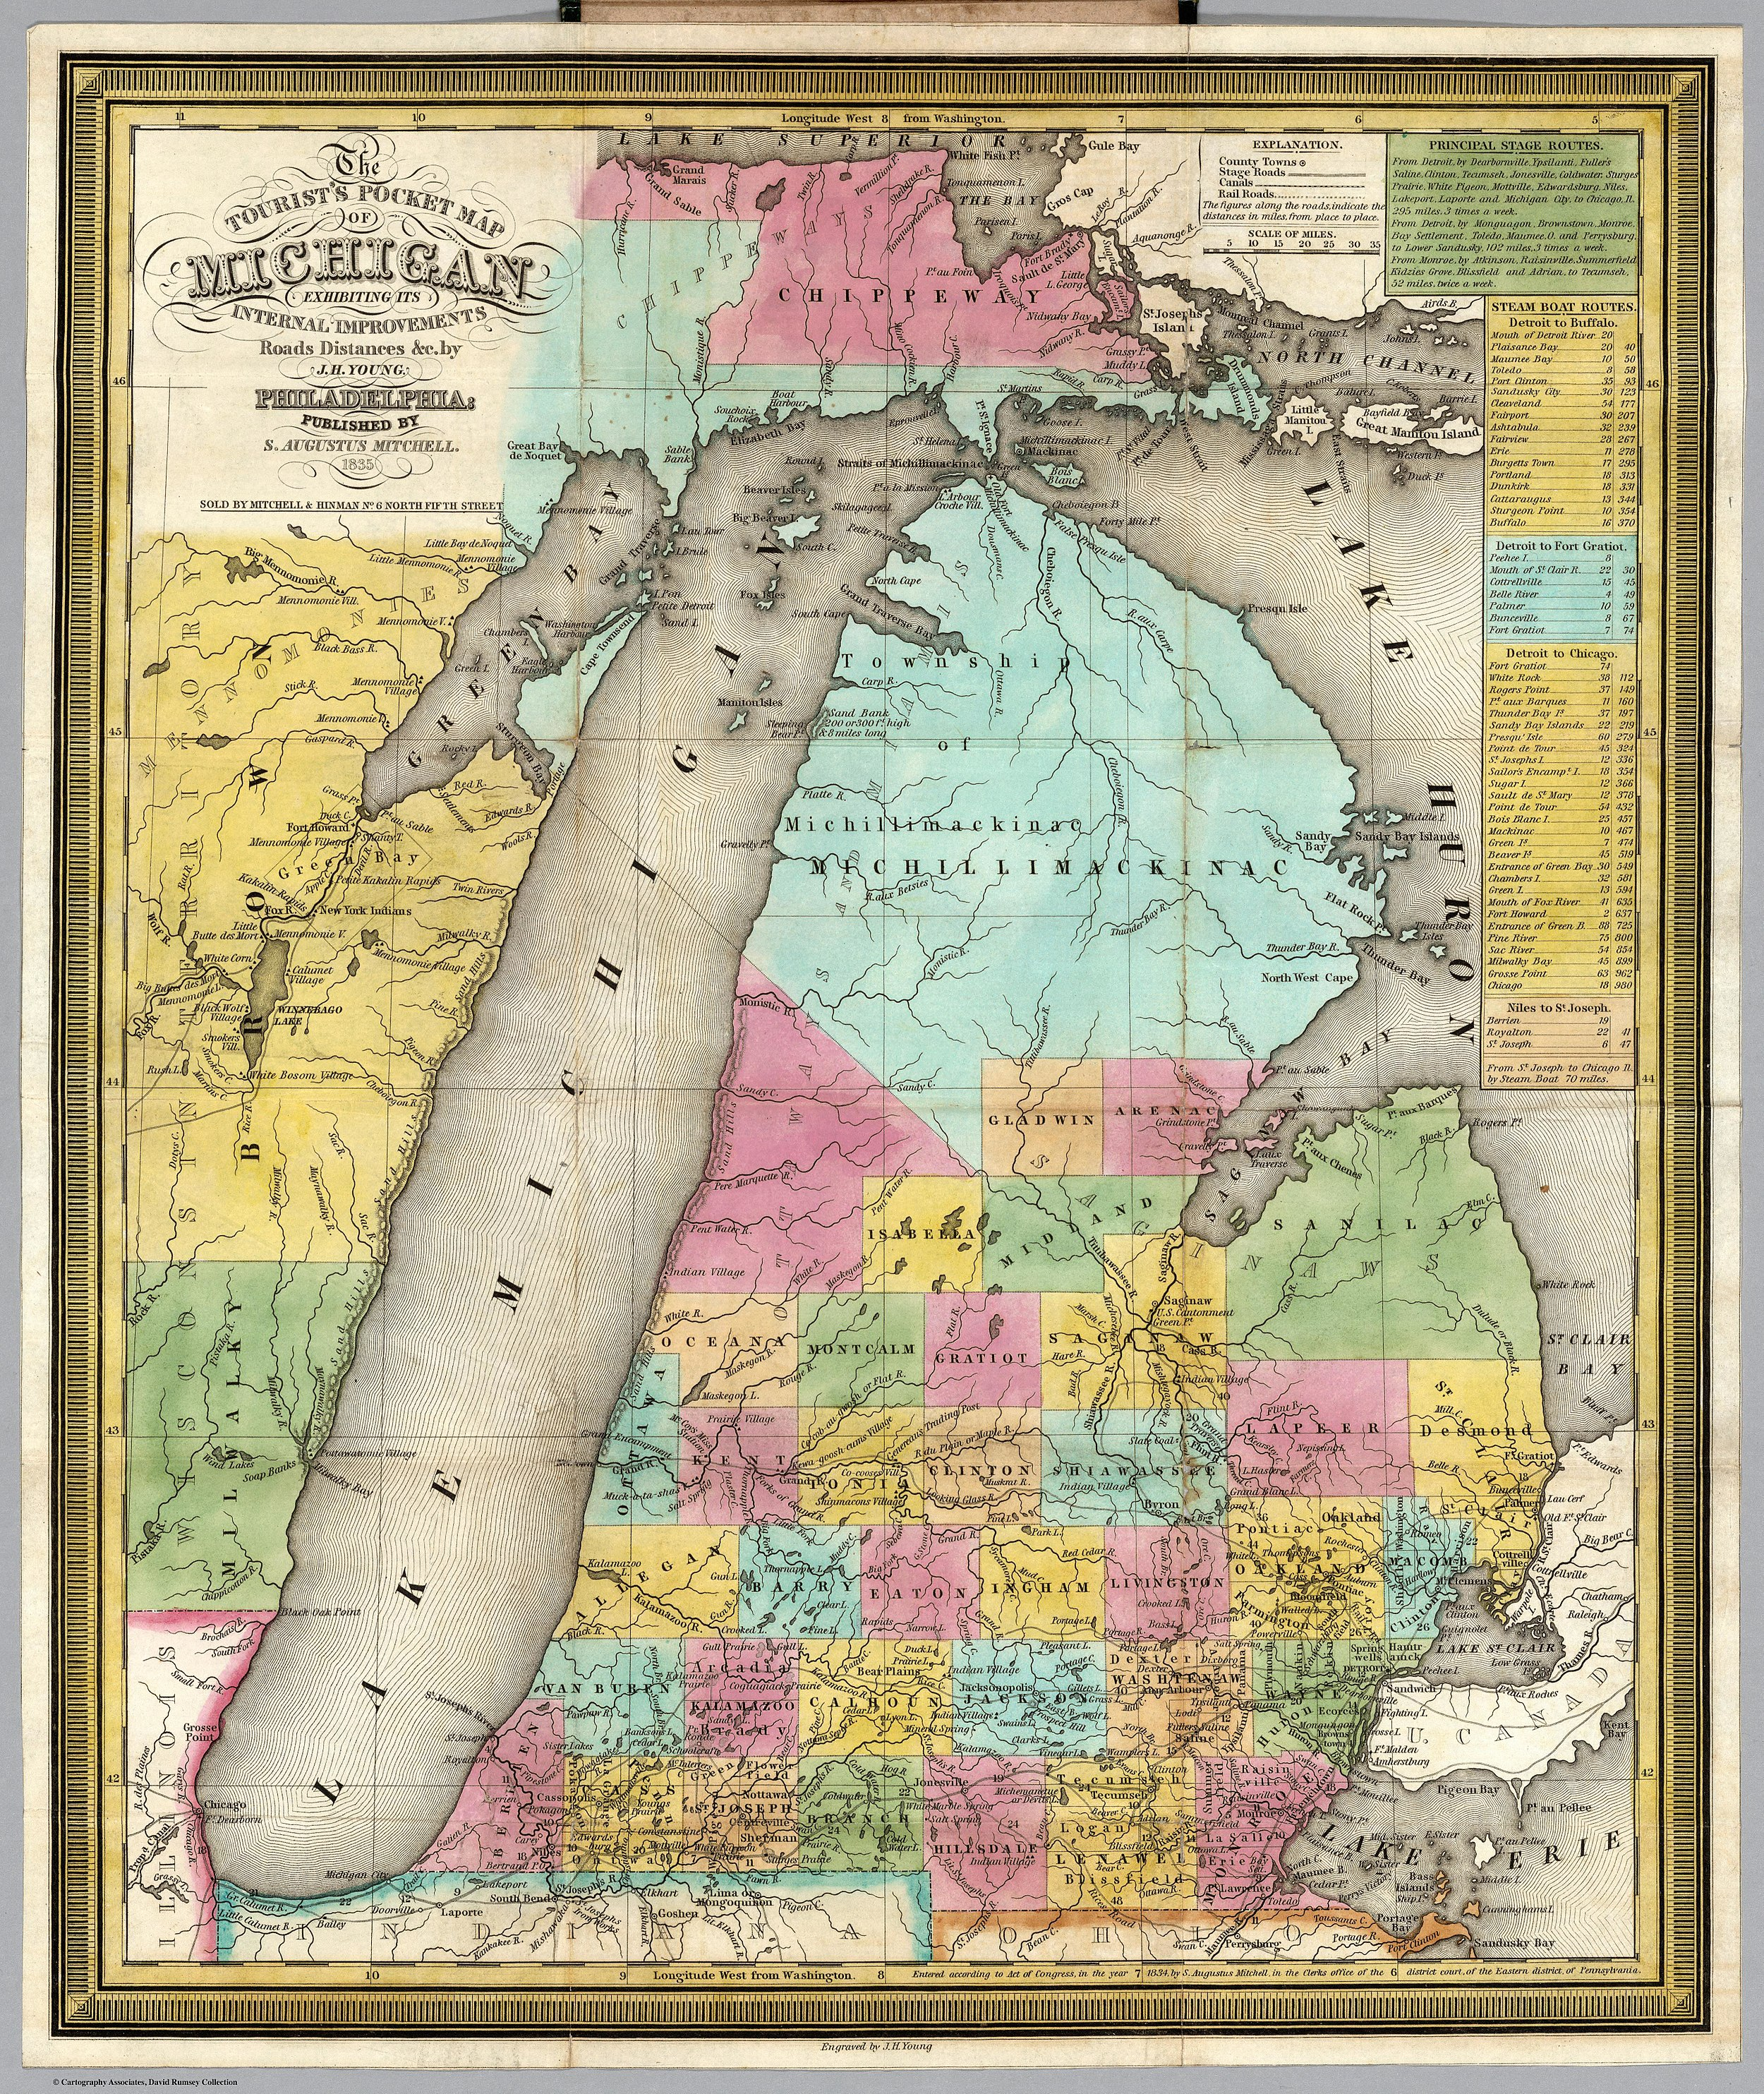 This inset from the 1835 Tourist's Pocket Map Of Michigan shows steam boat routes from Detroit to Buffalo, Detroit to Fort Gratiot, Detroit to Chicago via Michilimackinac, and Niles to St Joseph.